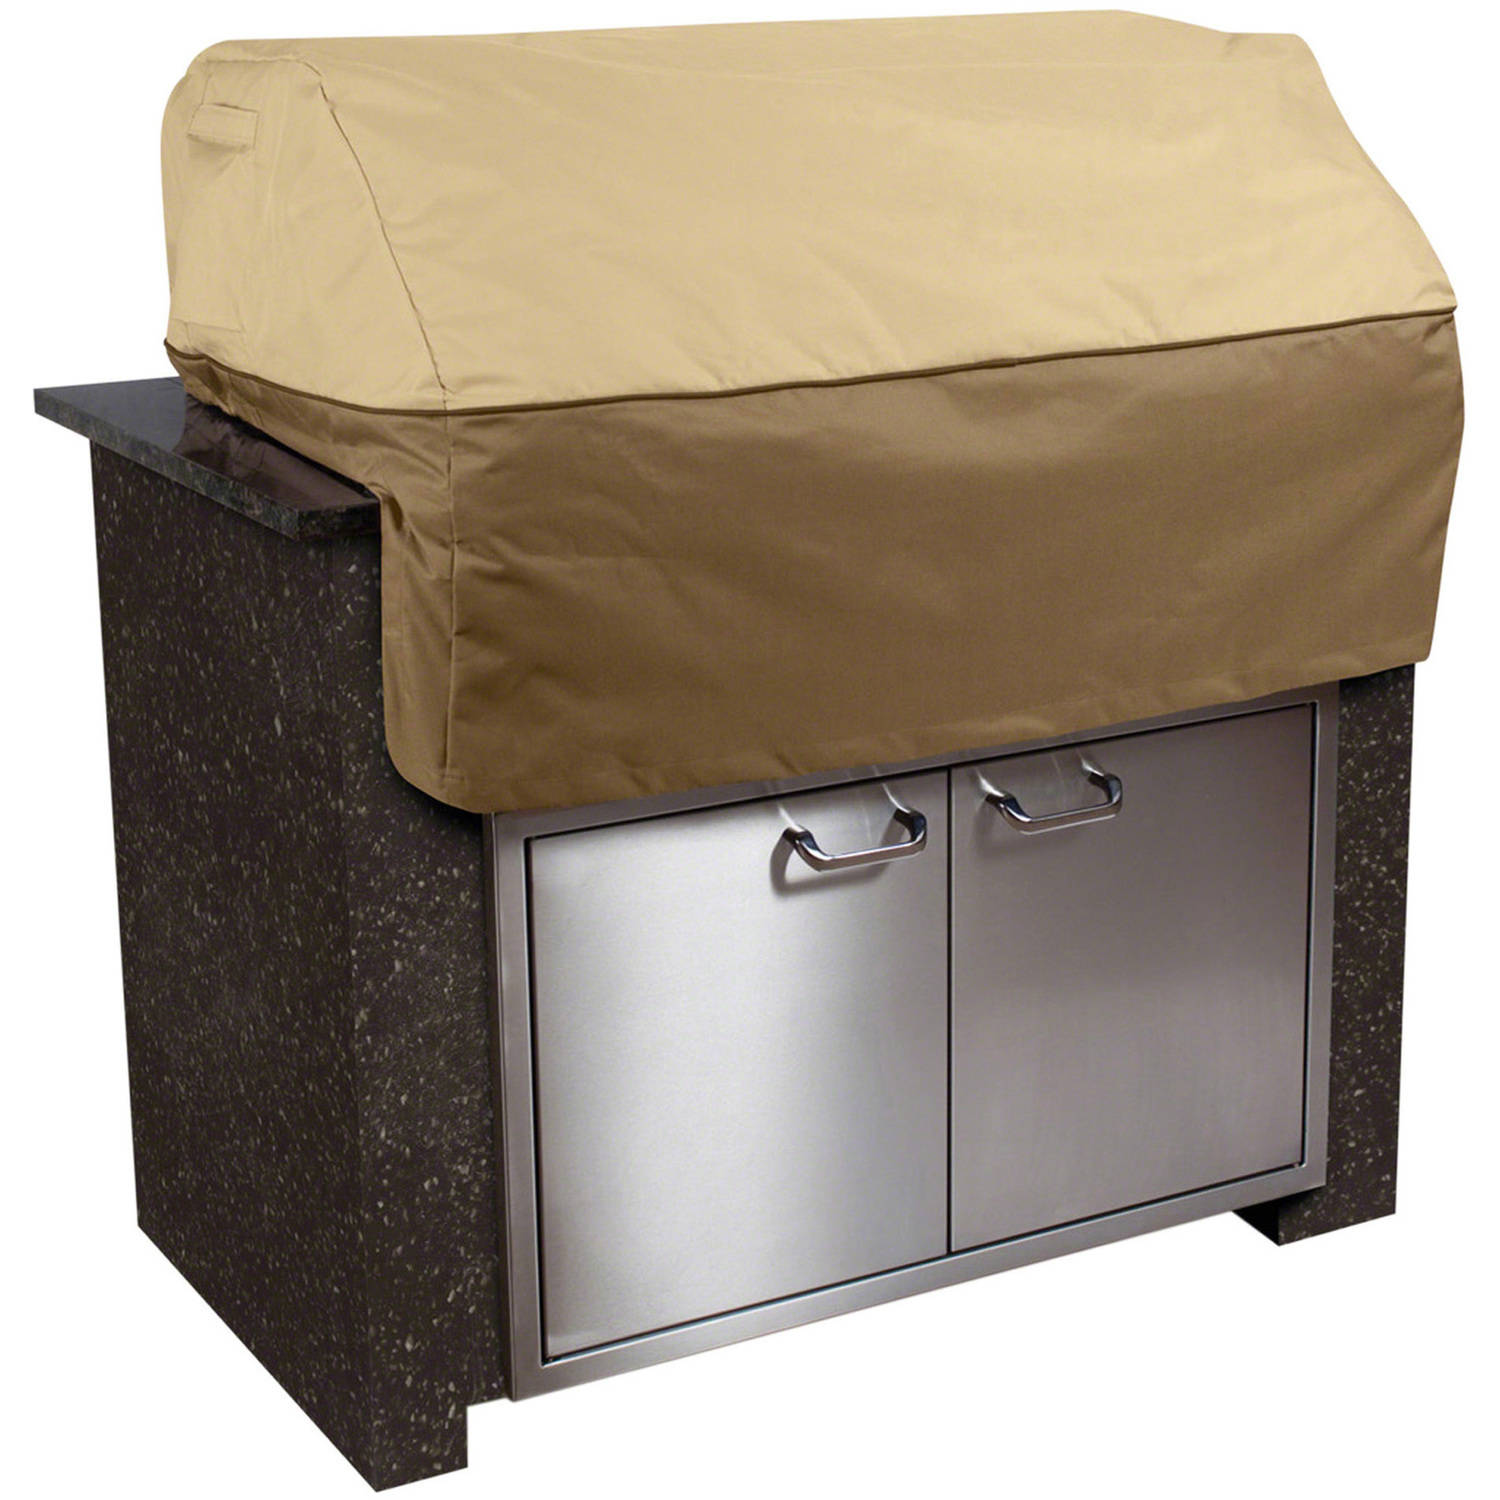 Classic Accessories Veranda Built-In Barbecue BBQ Grill Patio Storage Cover, X-Small, Pebble